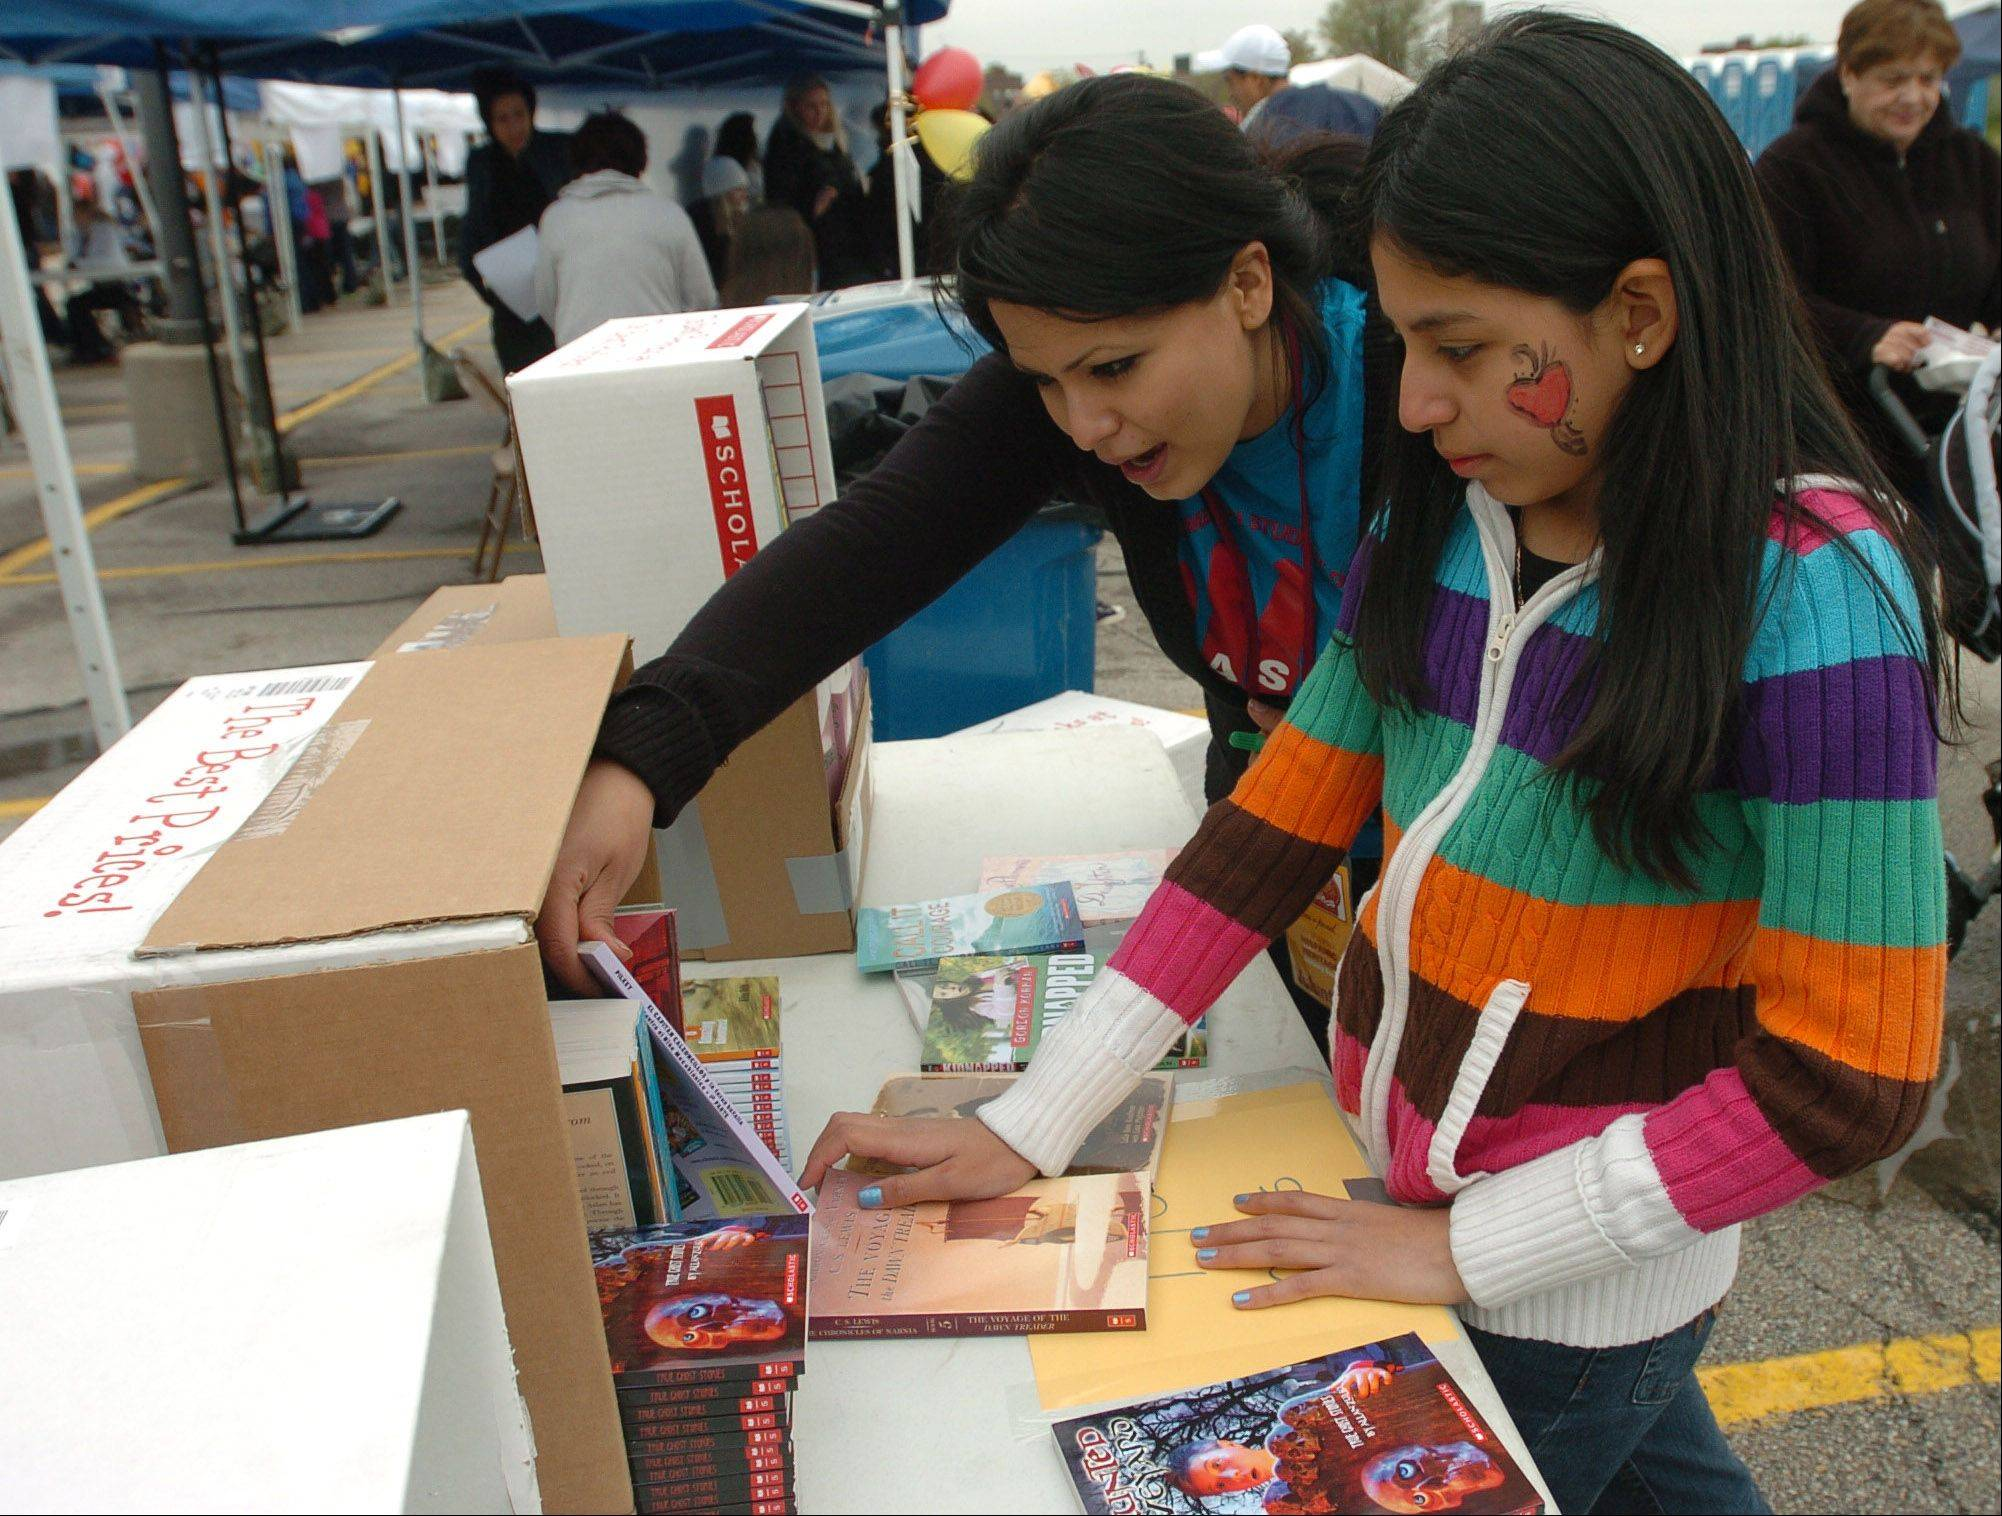 Aurora kids 'extremely excited' for books, libros